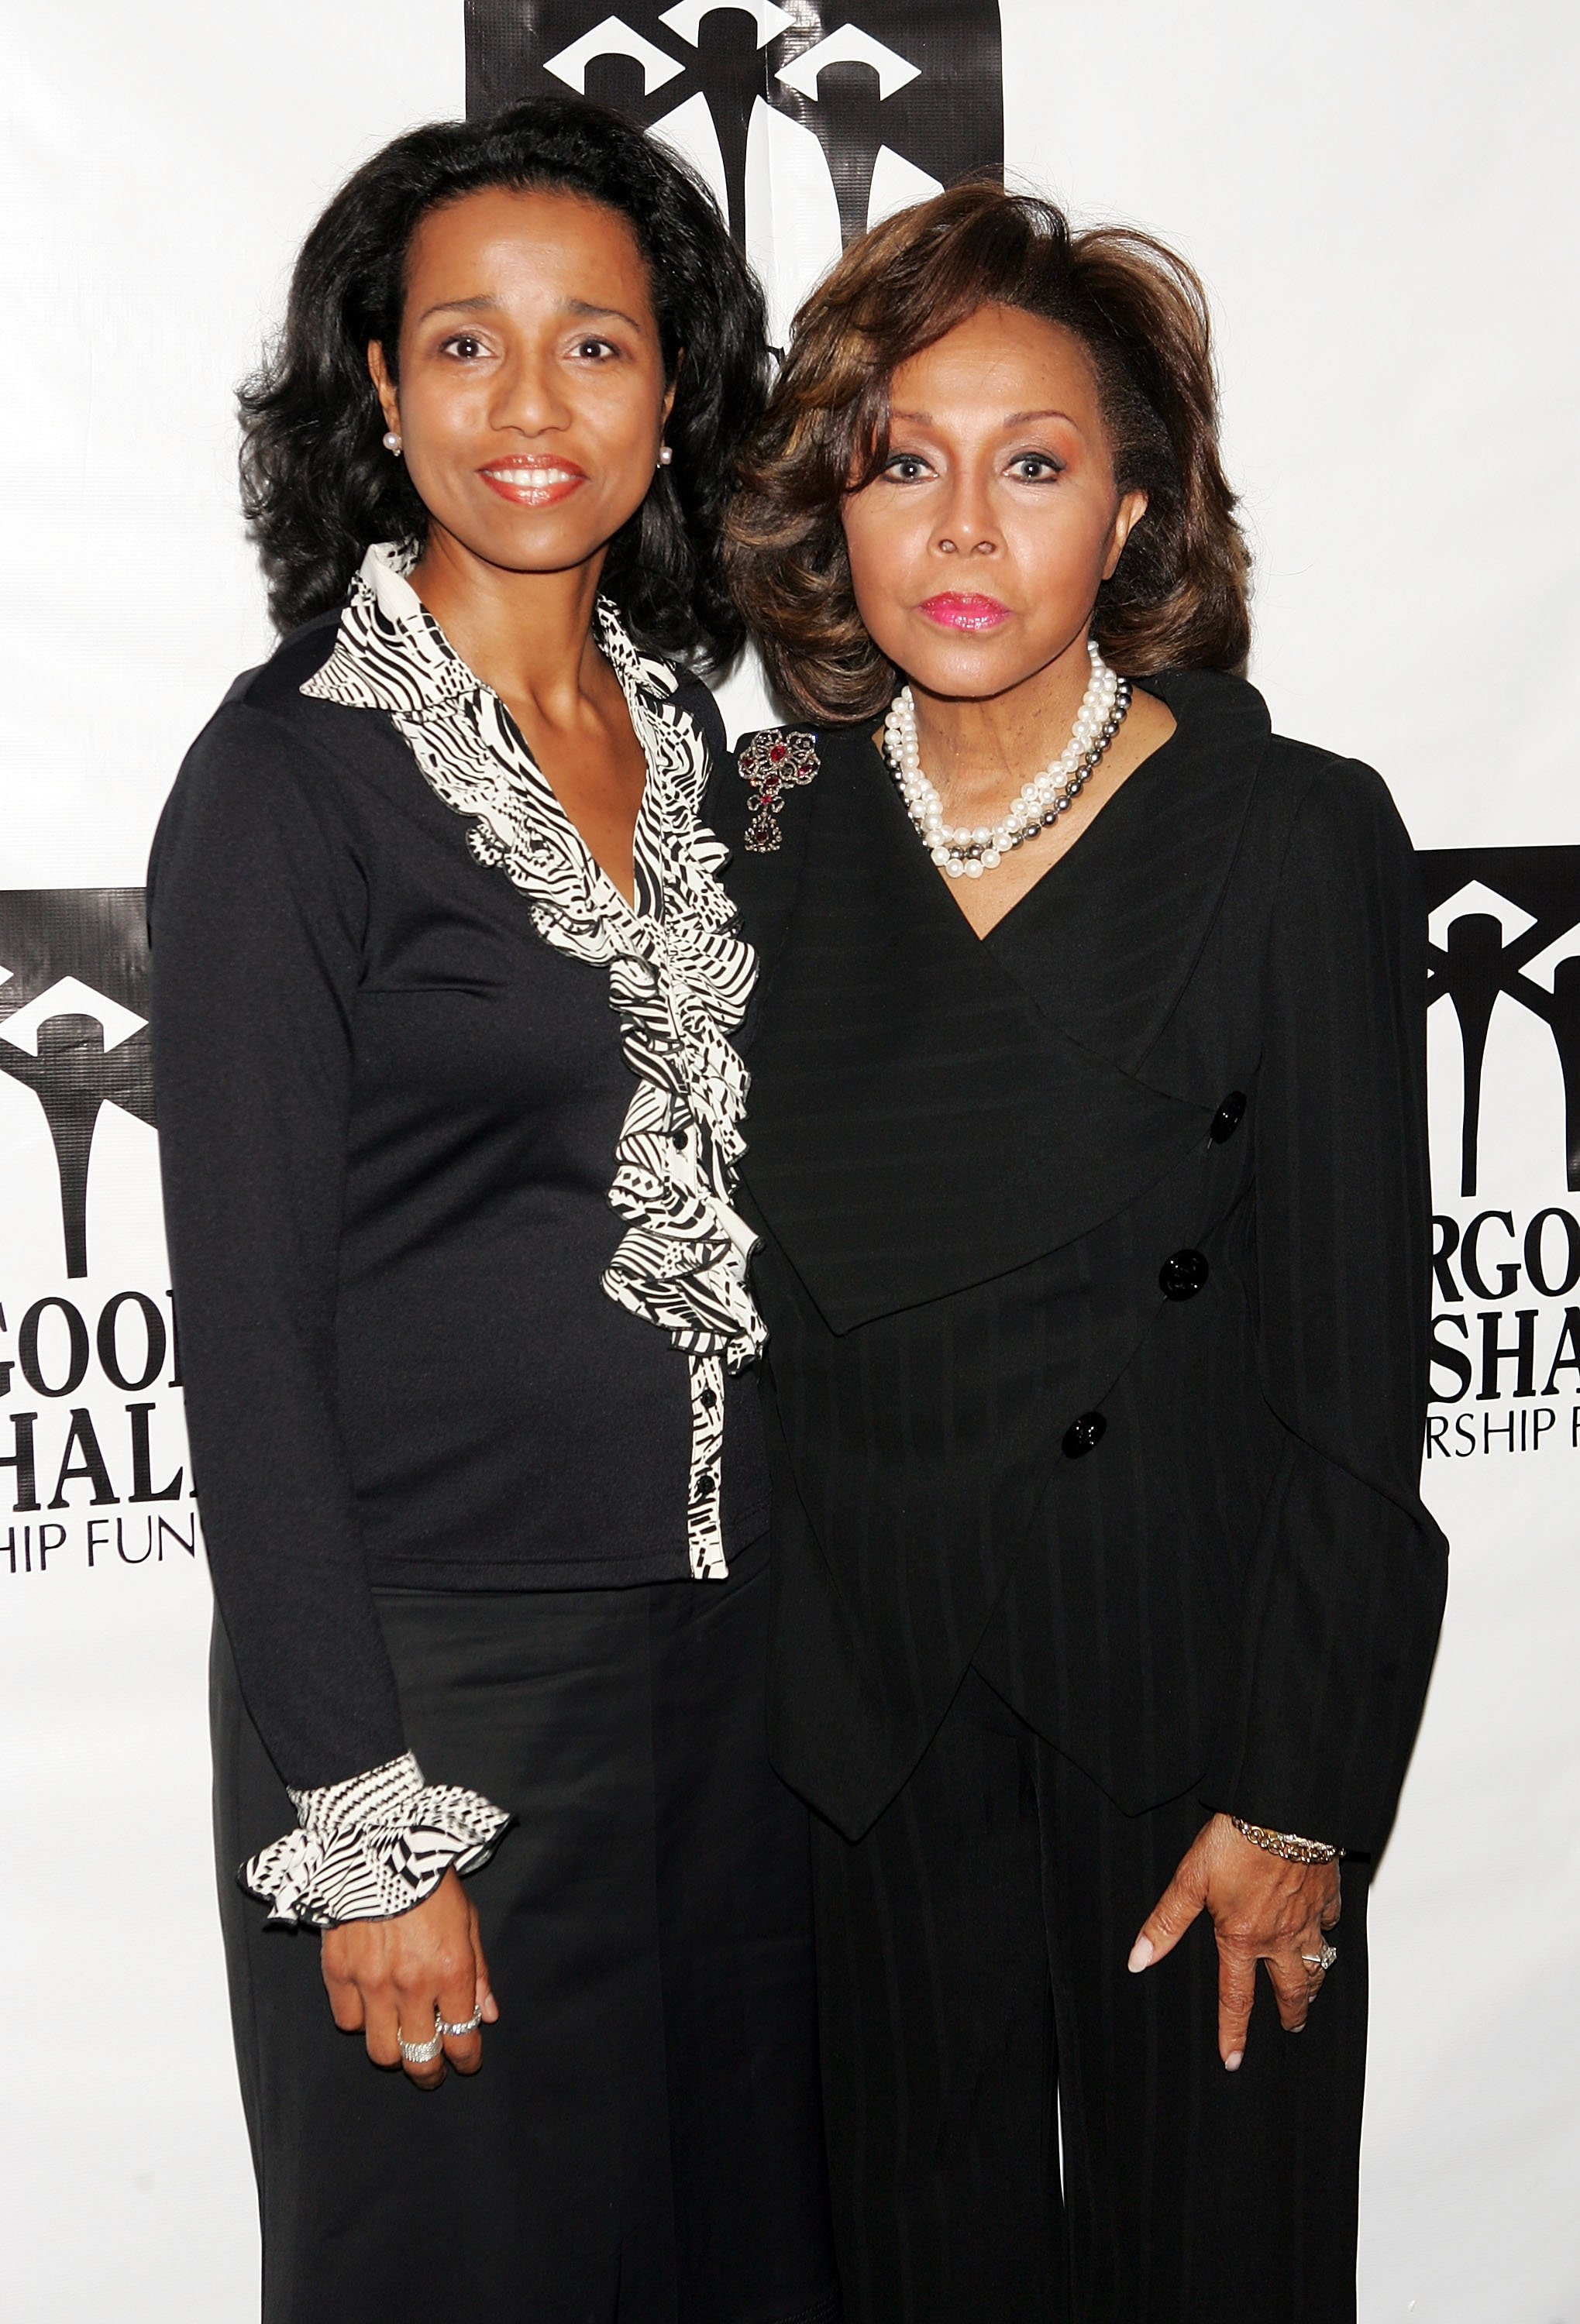 Diahann Carroll & Suzanne Kay at the Thurgood Marshall Scholarship Funds annual dinner on Nov. 7, 2005 in New York City | Photo: Getty Images